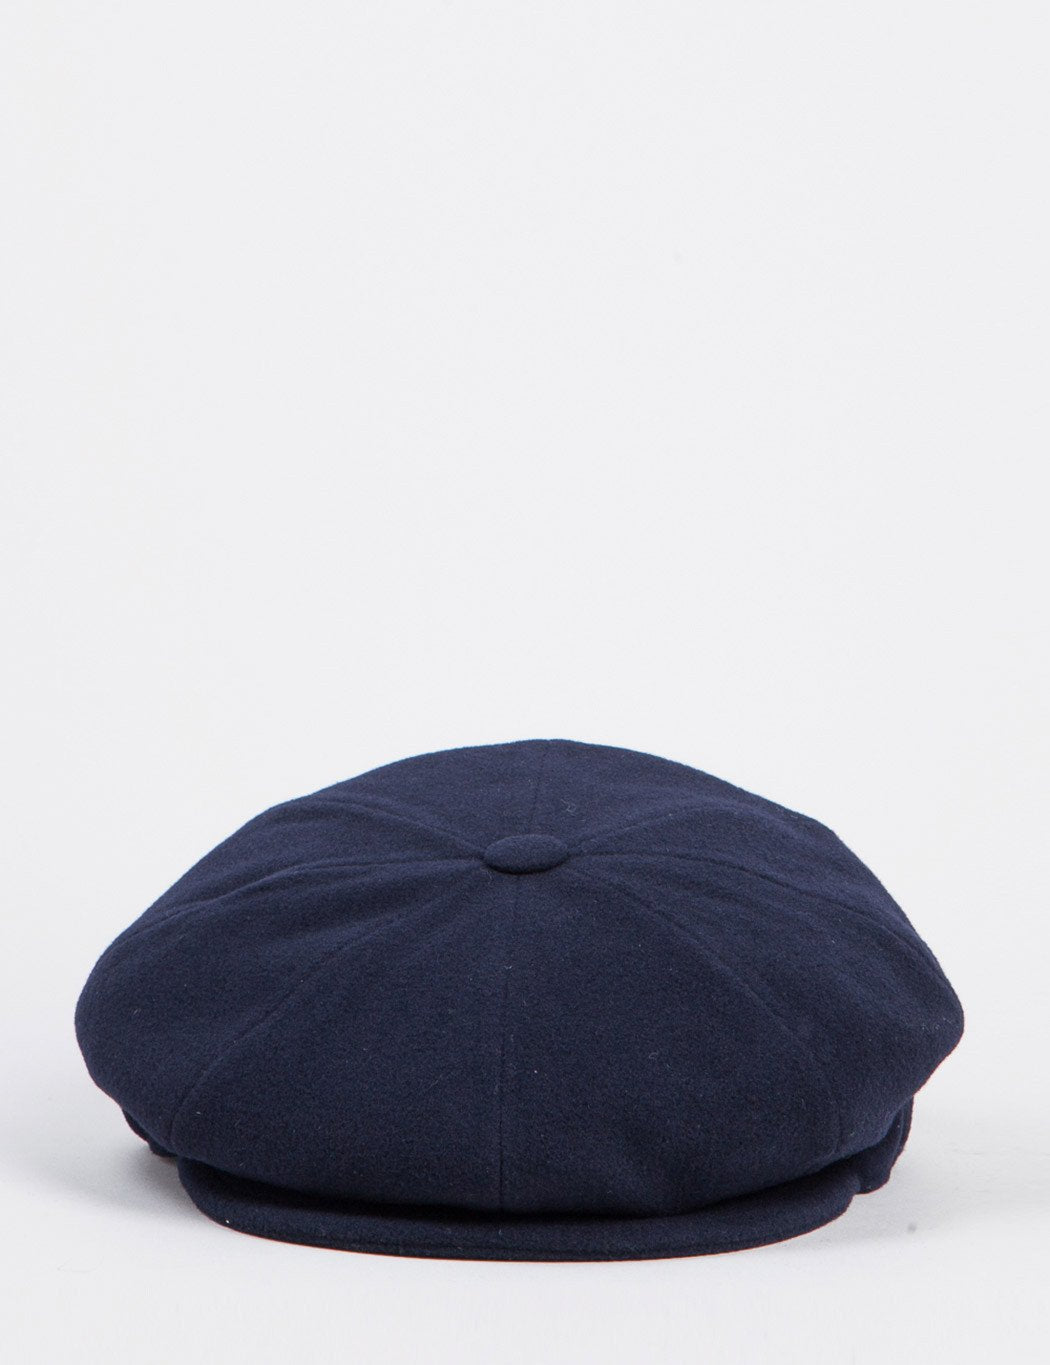 Bailey Galvin Wool Newsboy Cap - Navy Blue